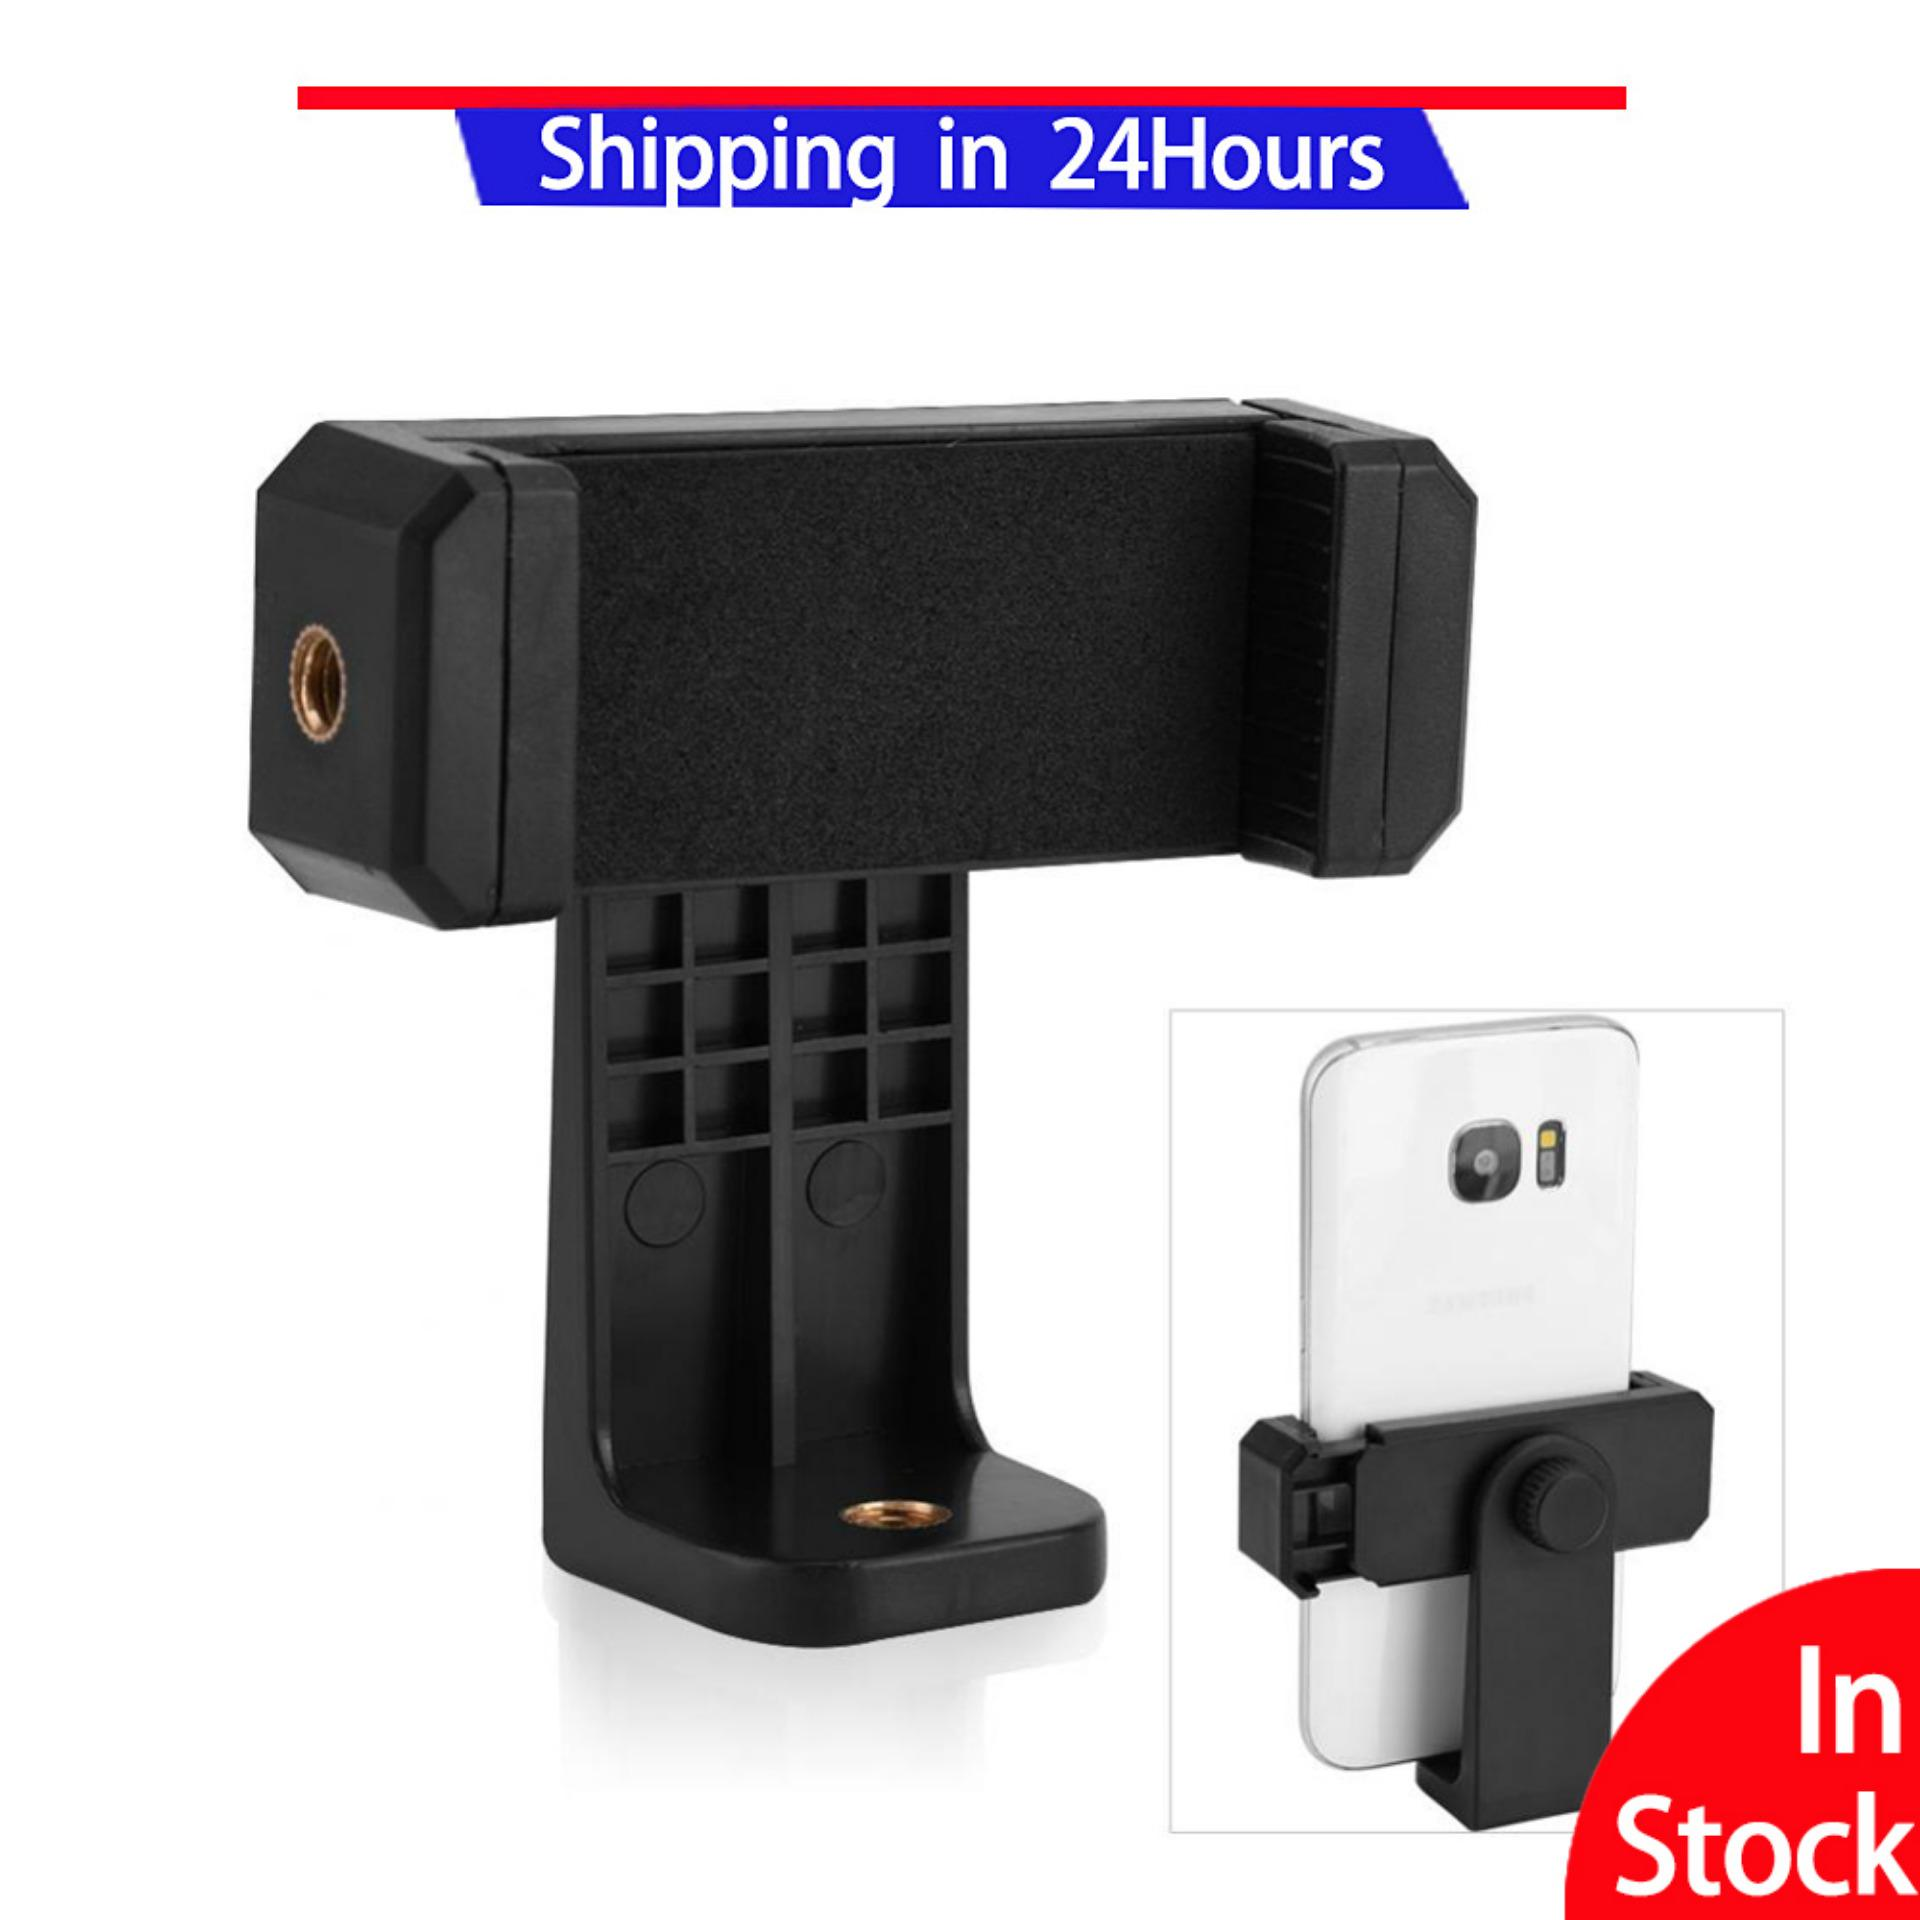 【Up to 40% Off】Universal 360° Rotation Phone Clip Mount Holder Grip